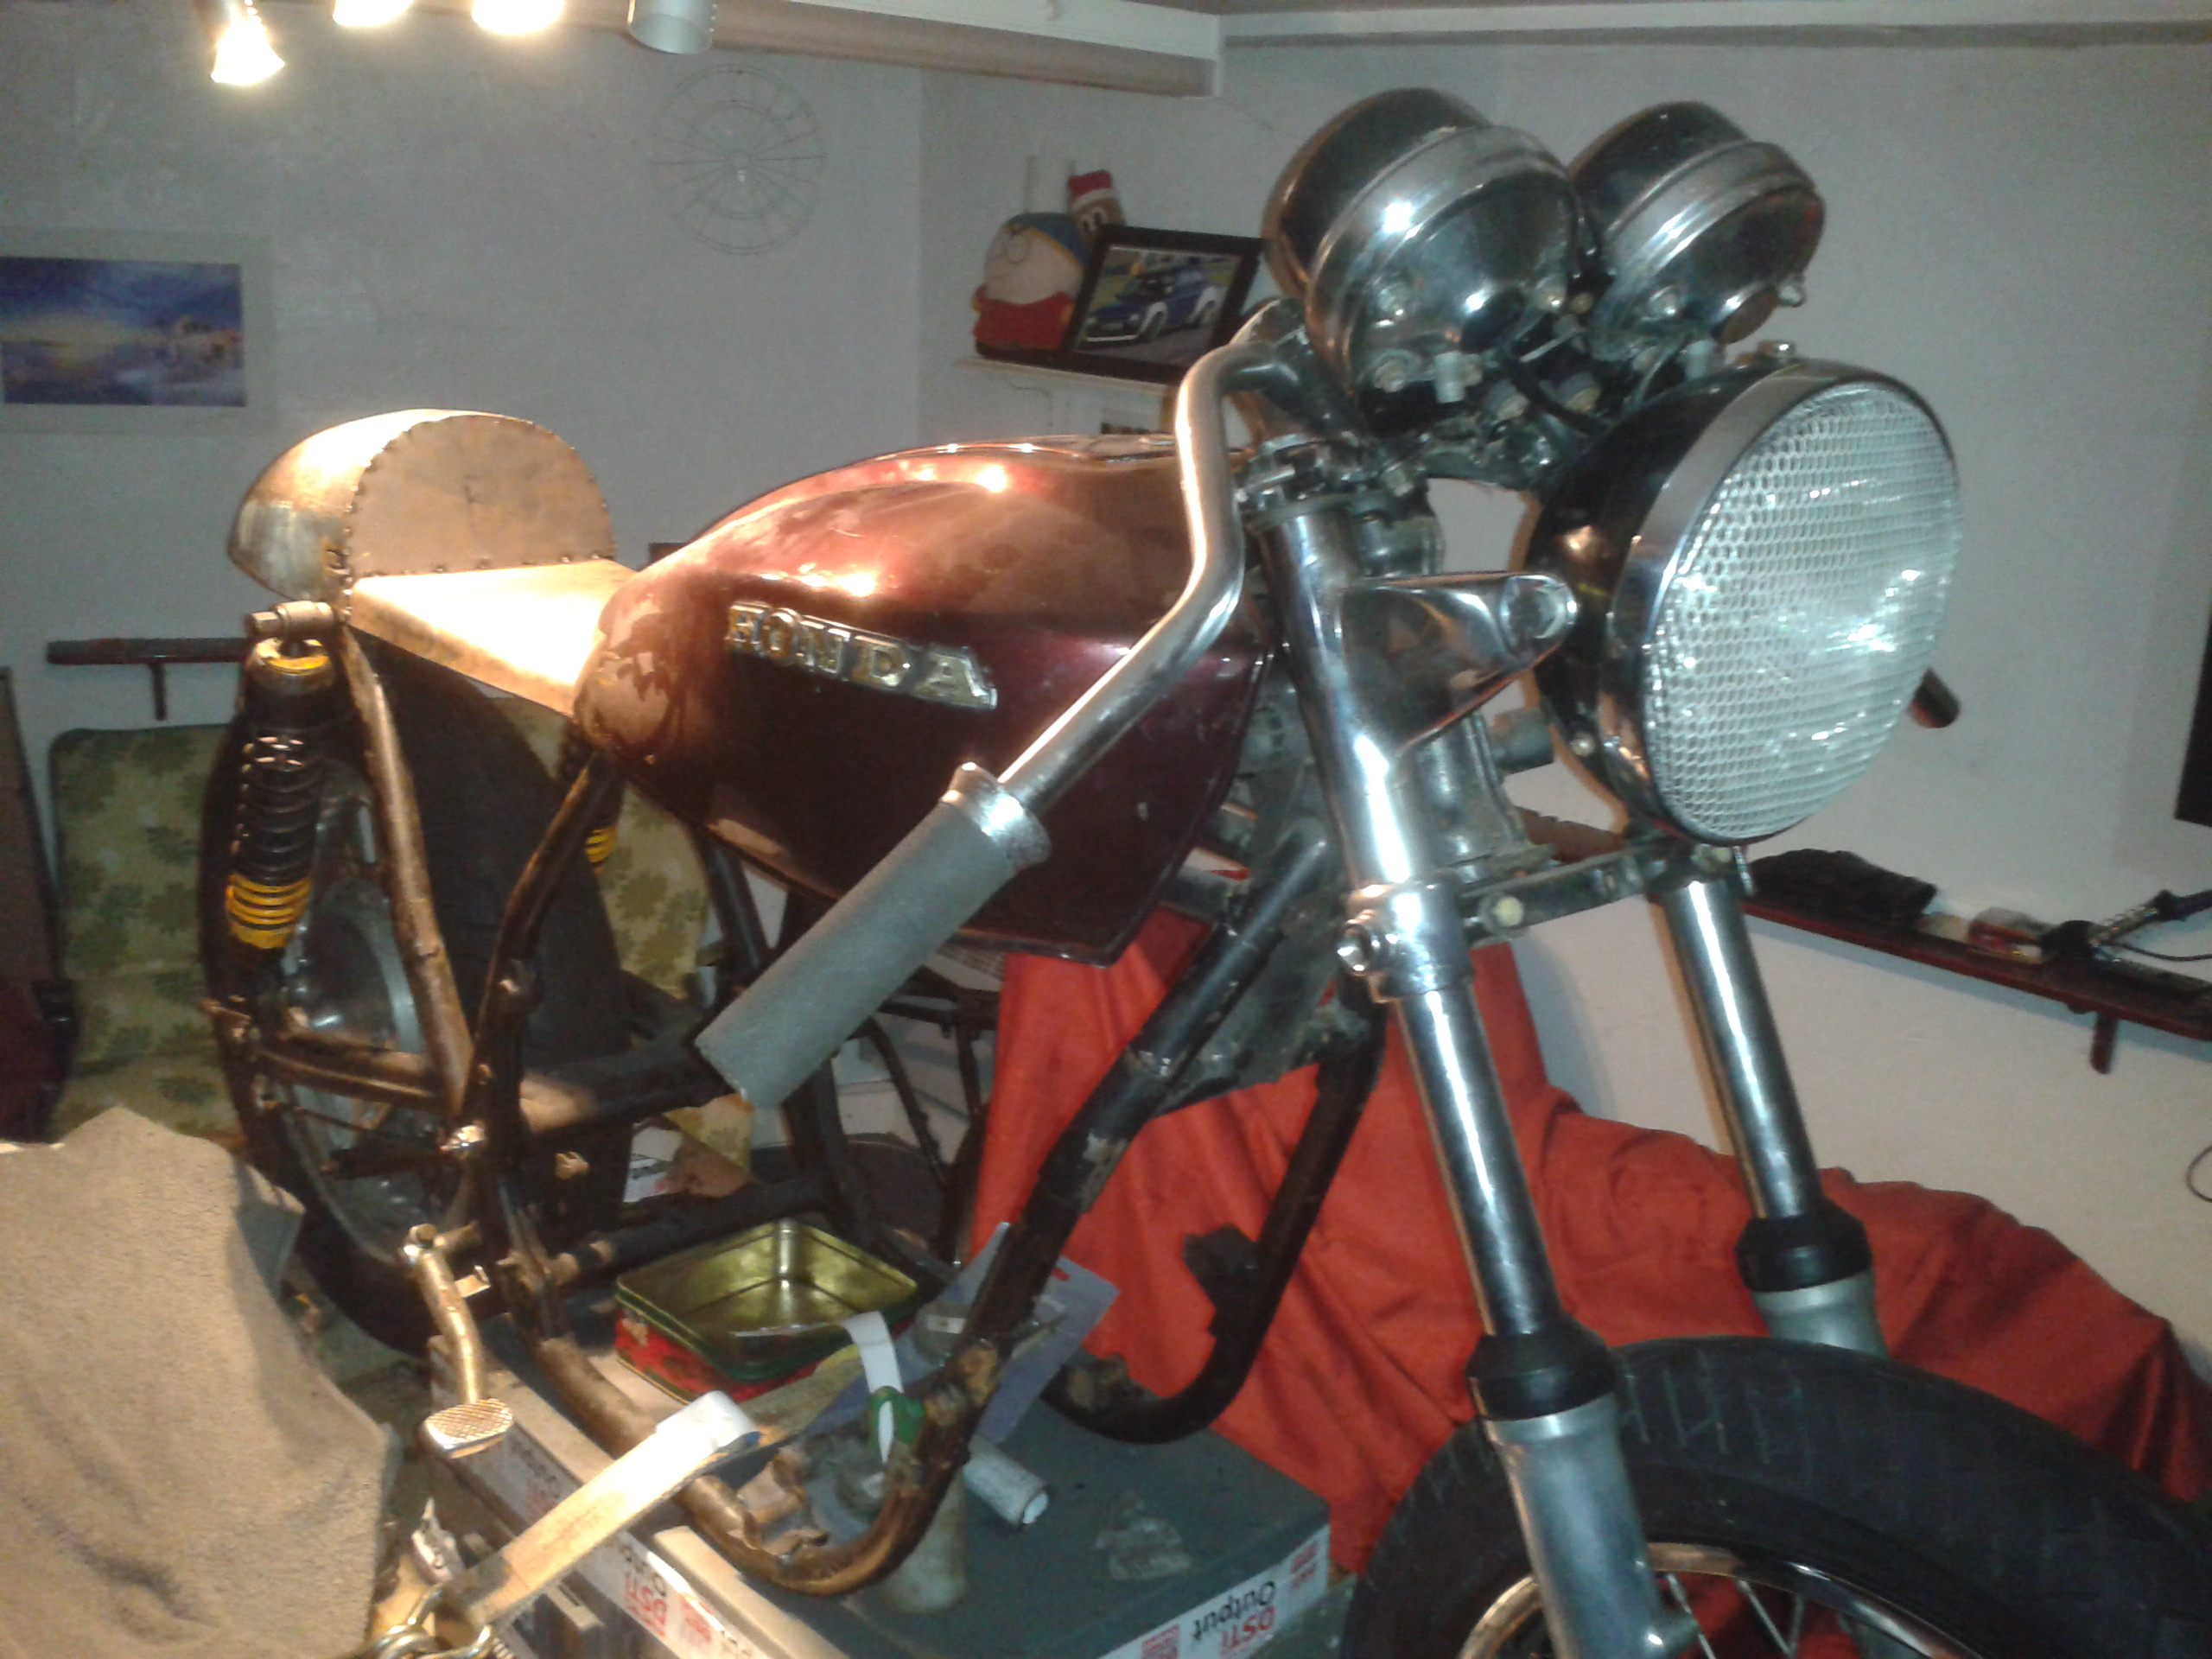 how to build a cb750 cafe racer